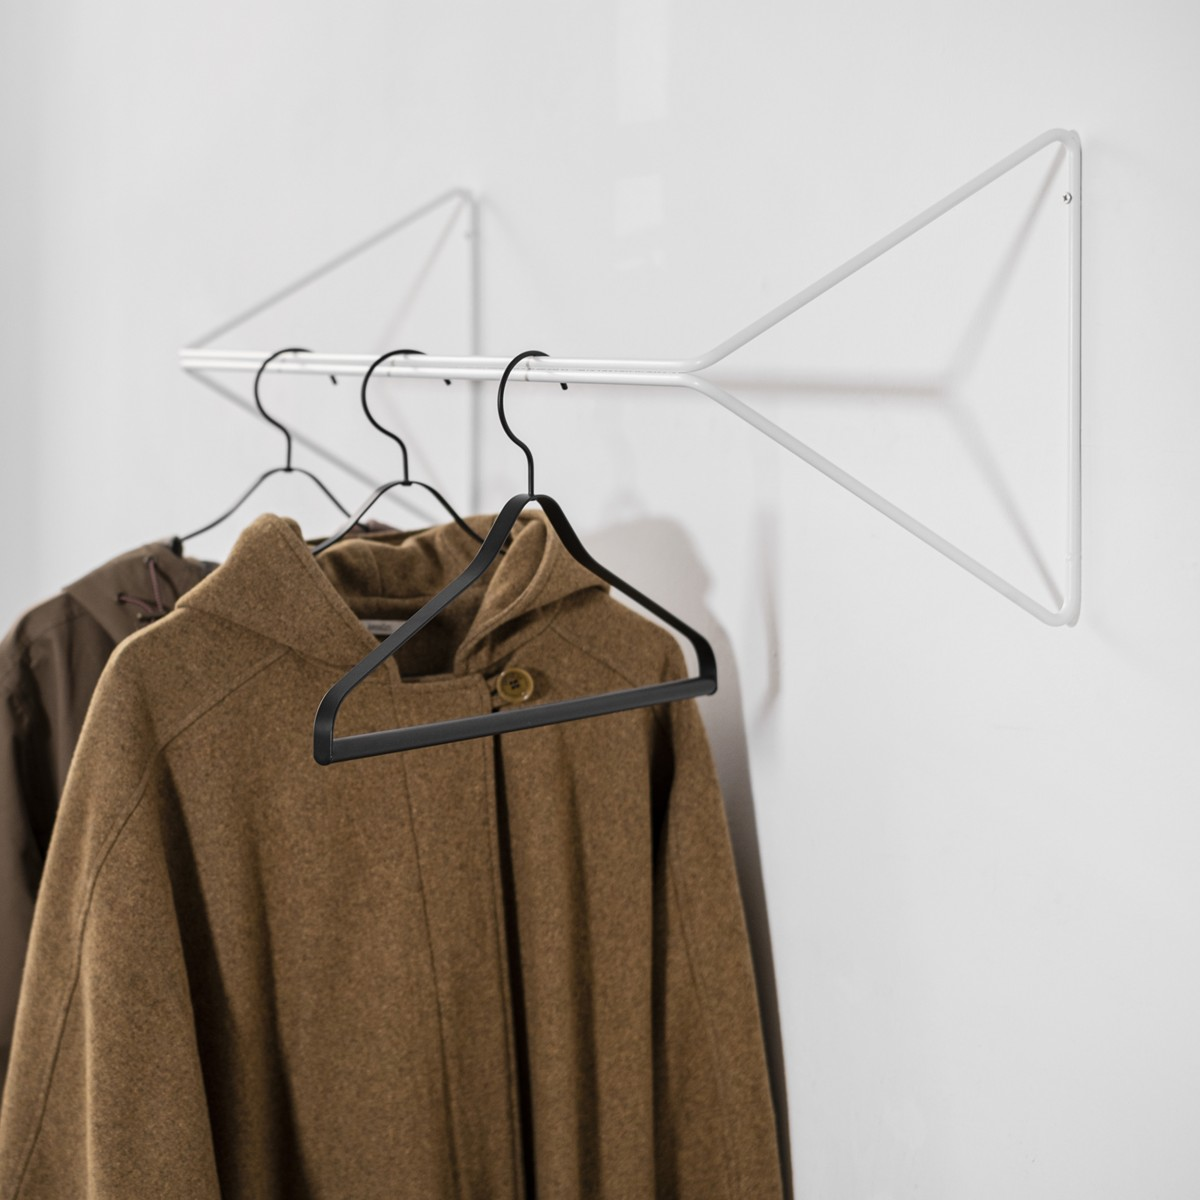 SYNC Garderobe Weiß | Result Objects